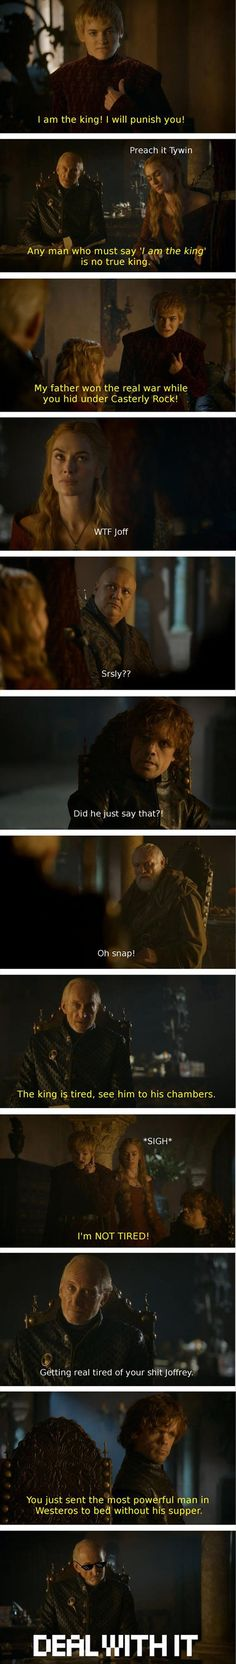 I hate Tywin because he is the reason Jaime Tyrion and Cersei are so messed up, But.... I do really love the man too..